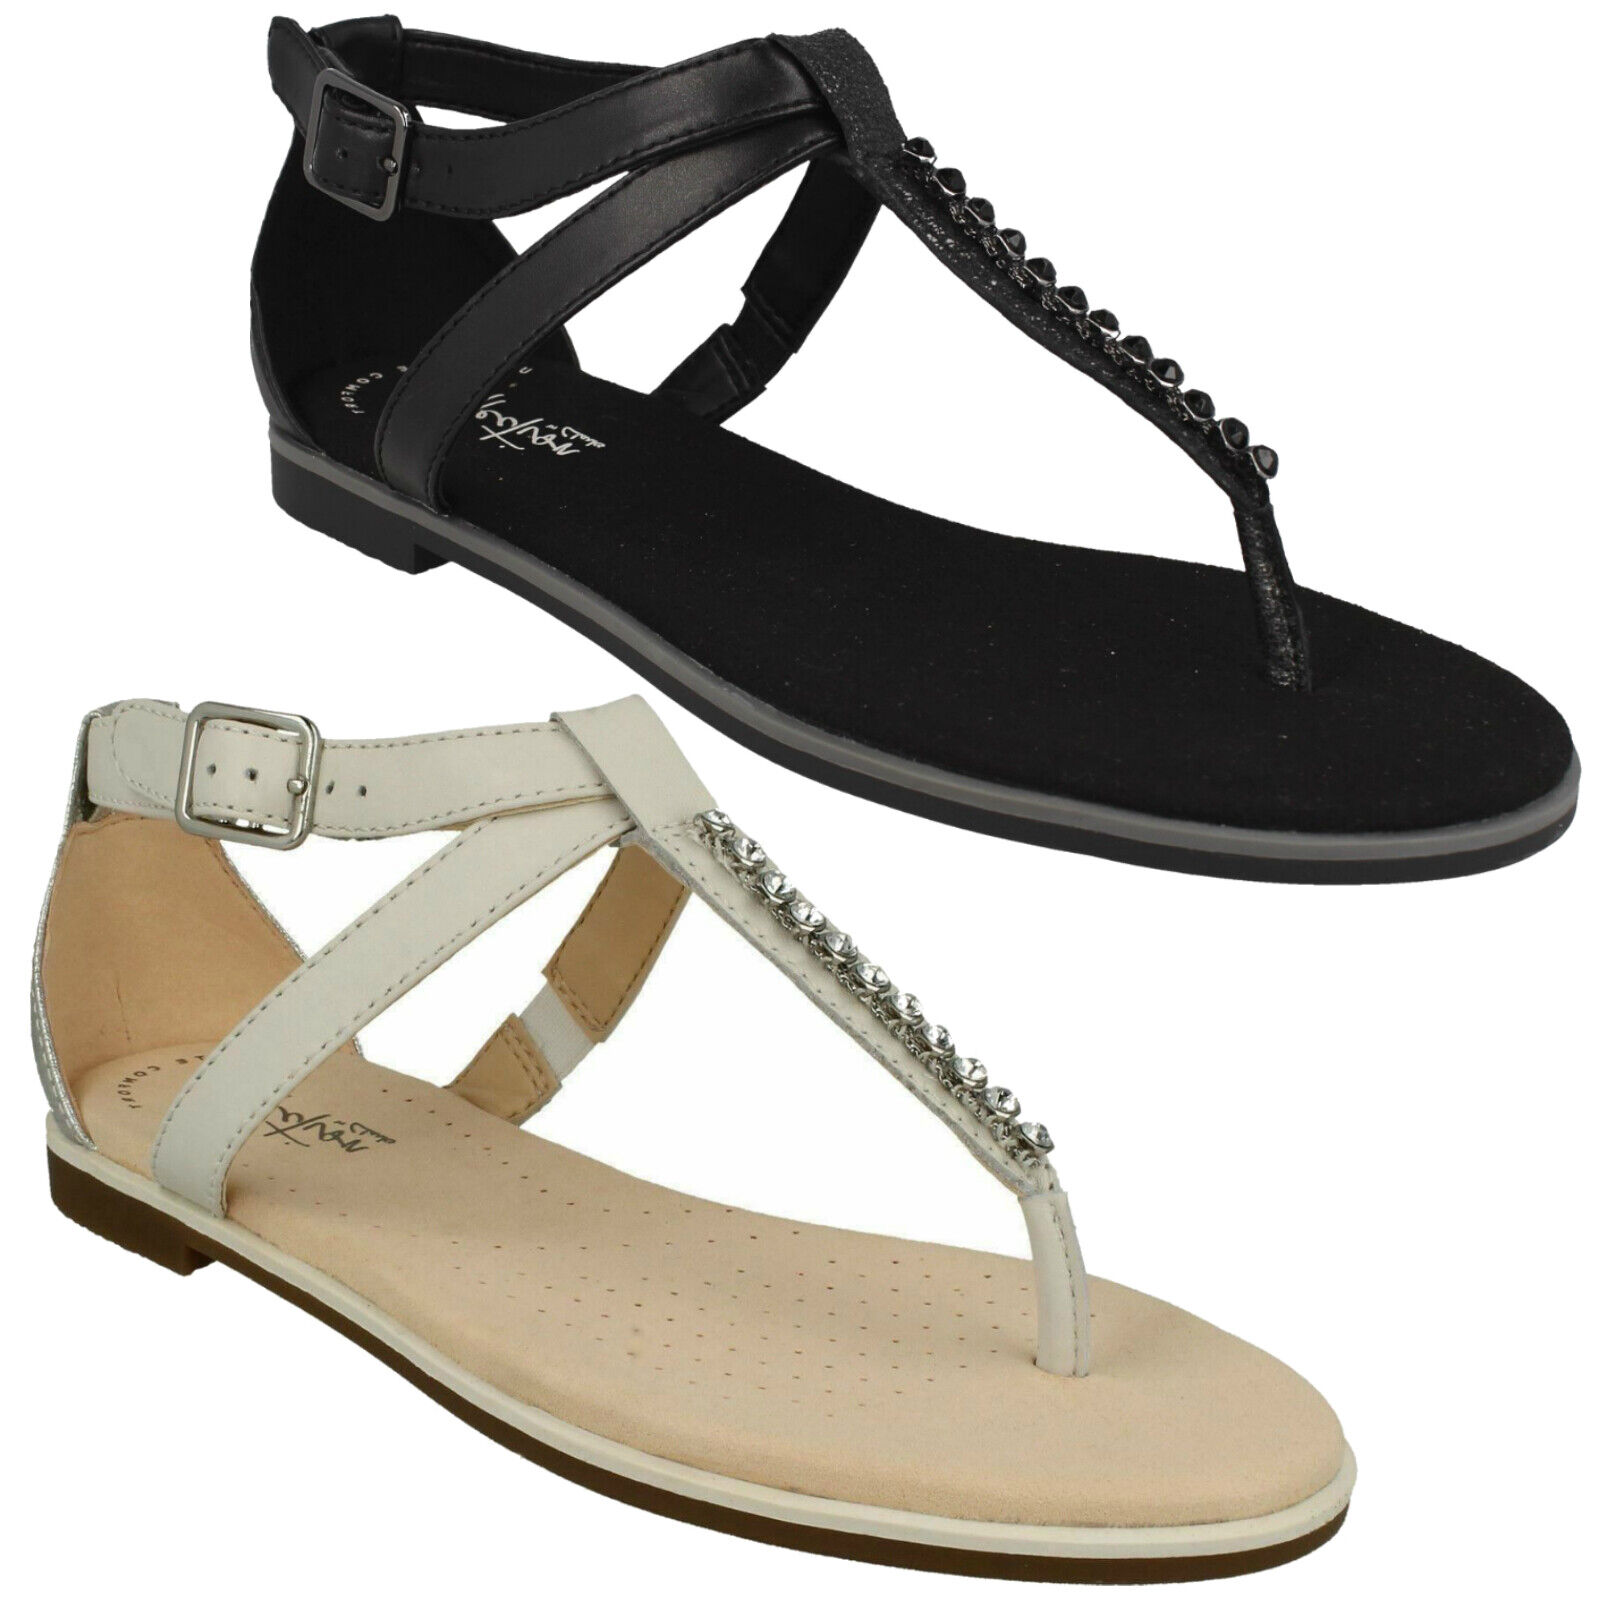 BAY POPPY LADIES CLARKS BUCKLE ANKLE STRAP TOE POST LEATHER FLAT T BAR SANDALS